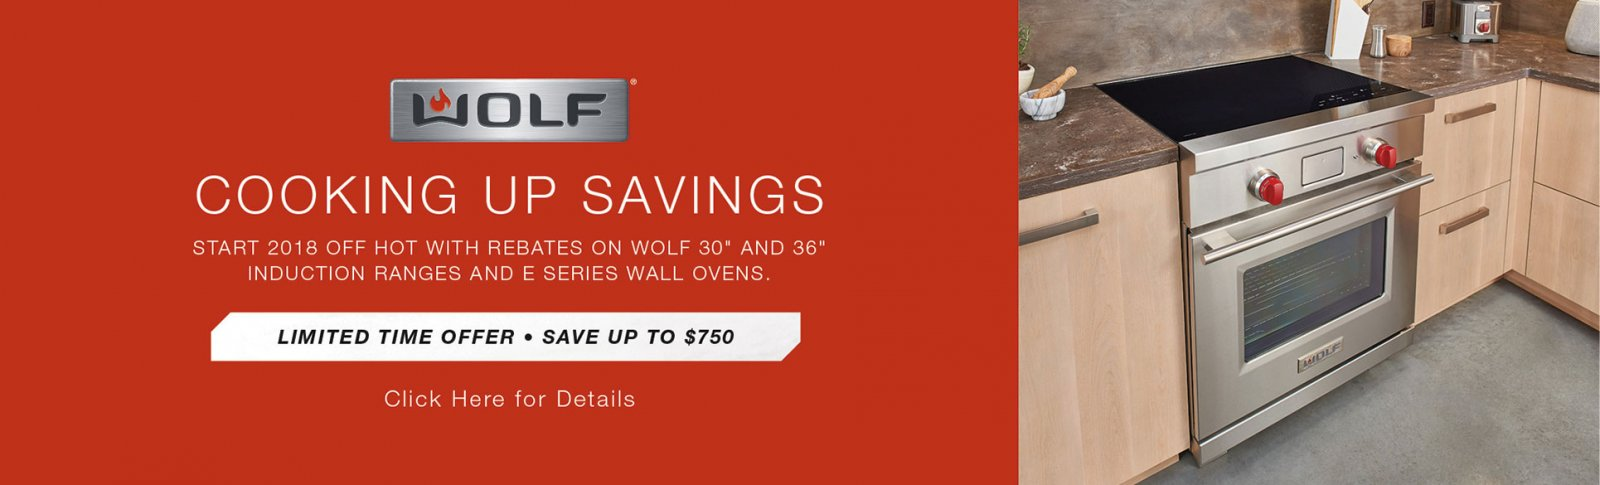 Rebate savings with qualified Wolf Induction Ranges and Wall Ovens